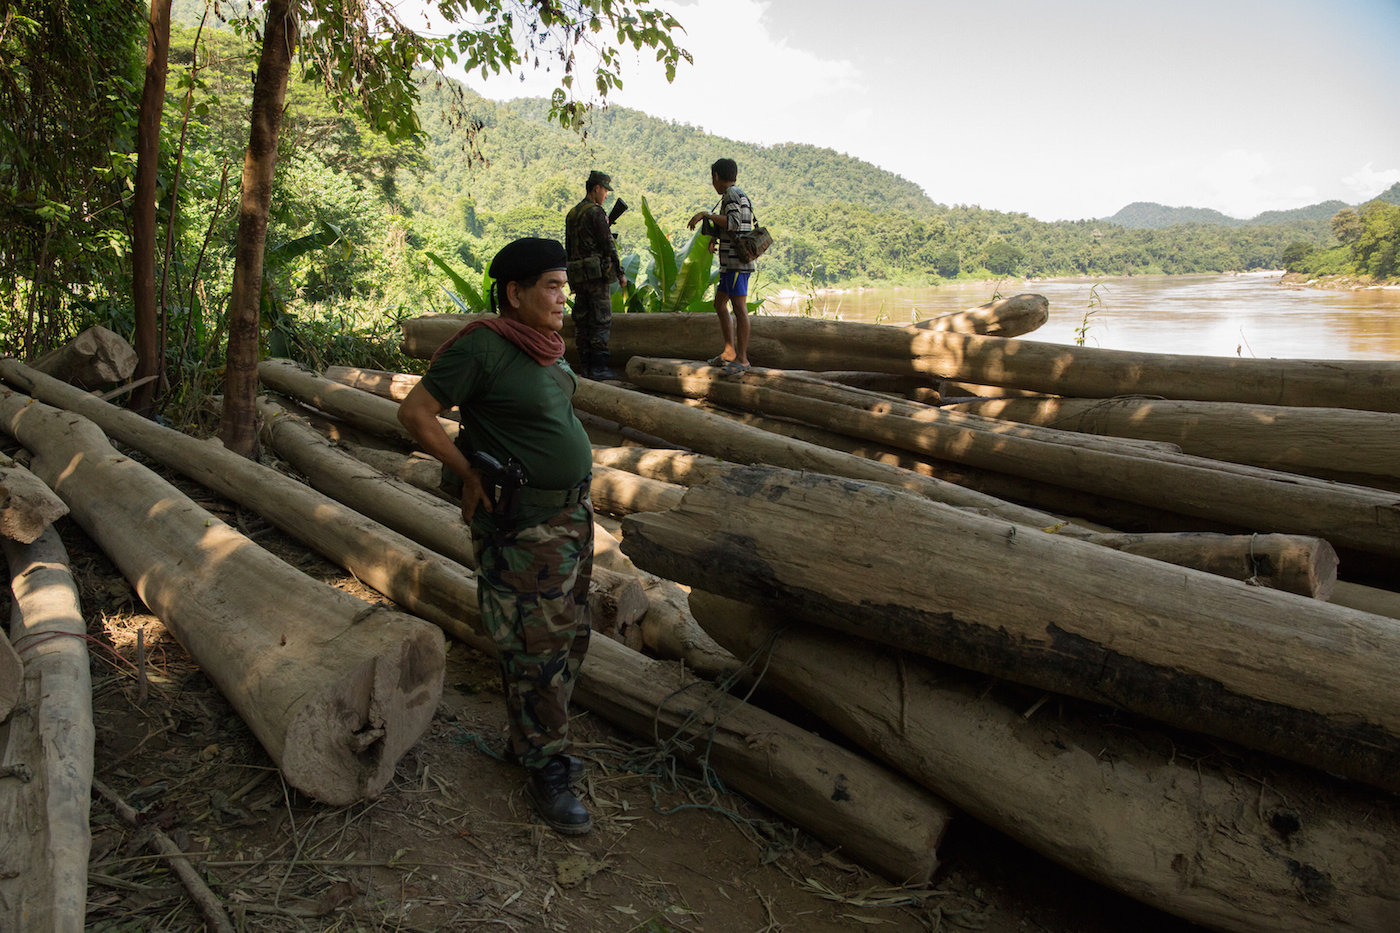 Lieutenant Colonel Kyaw Mue of the KNLA's 5th Brigade shows tons of illegally logged timber seized by his brigade earlier this year. He told Mongabay that the Karenni National People's Liberation Front had asked permission to transport the logs down the river through KNLA Brigade 5 territory, but were refused. Photo by Demelza Stokes.